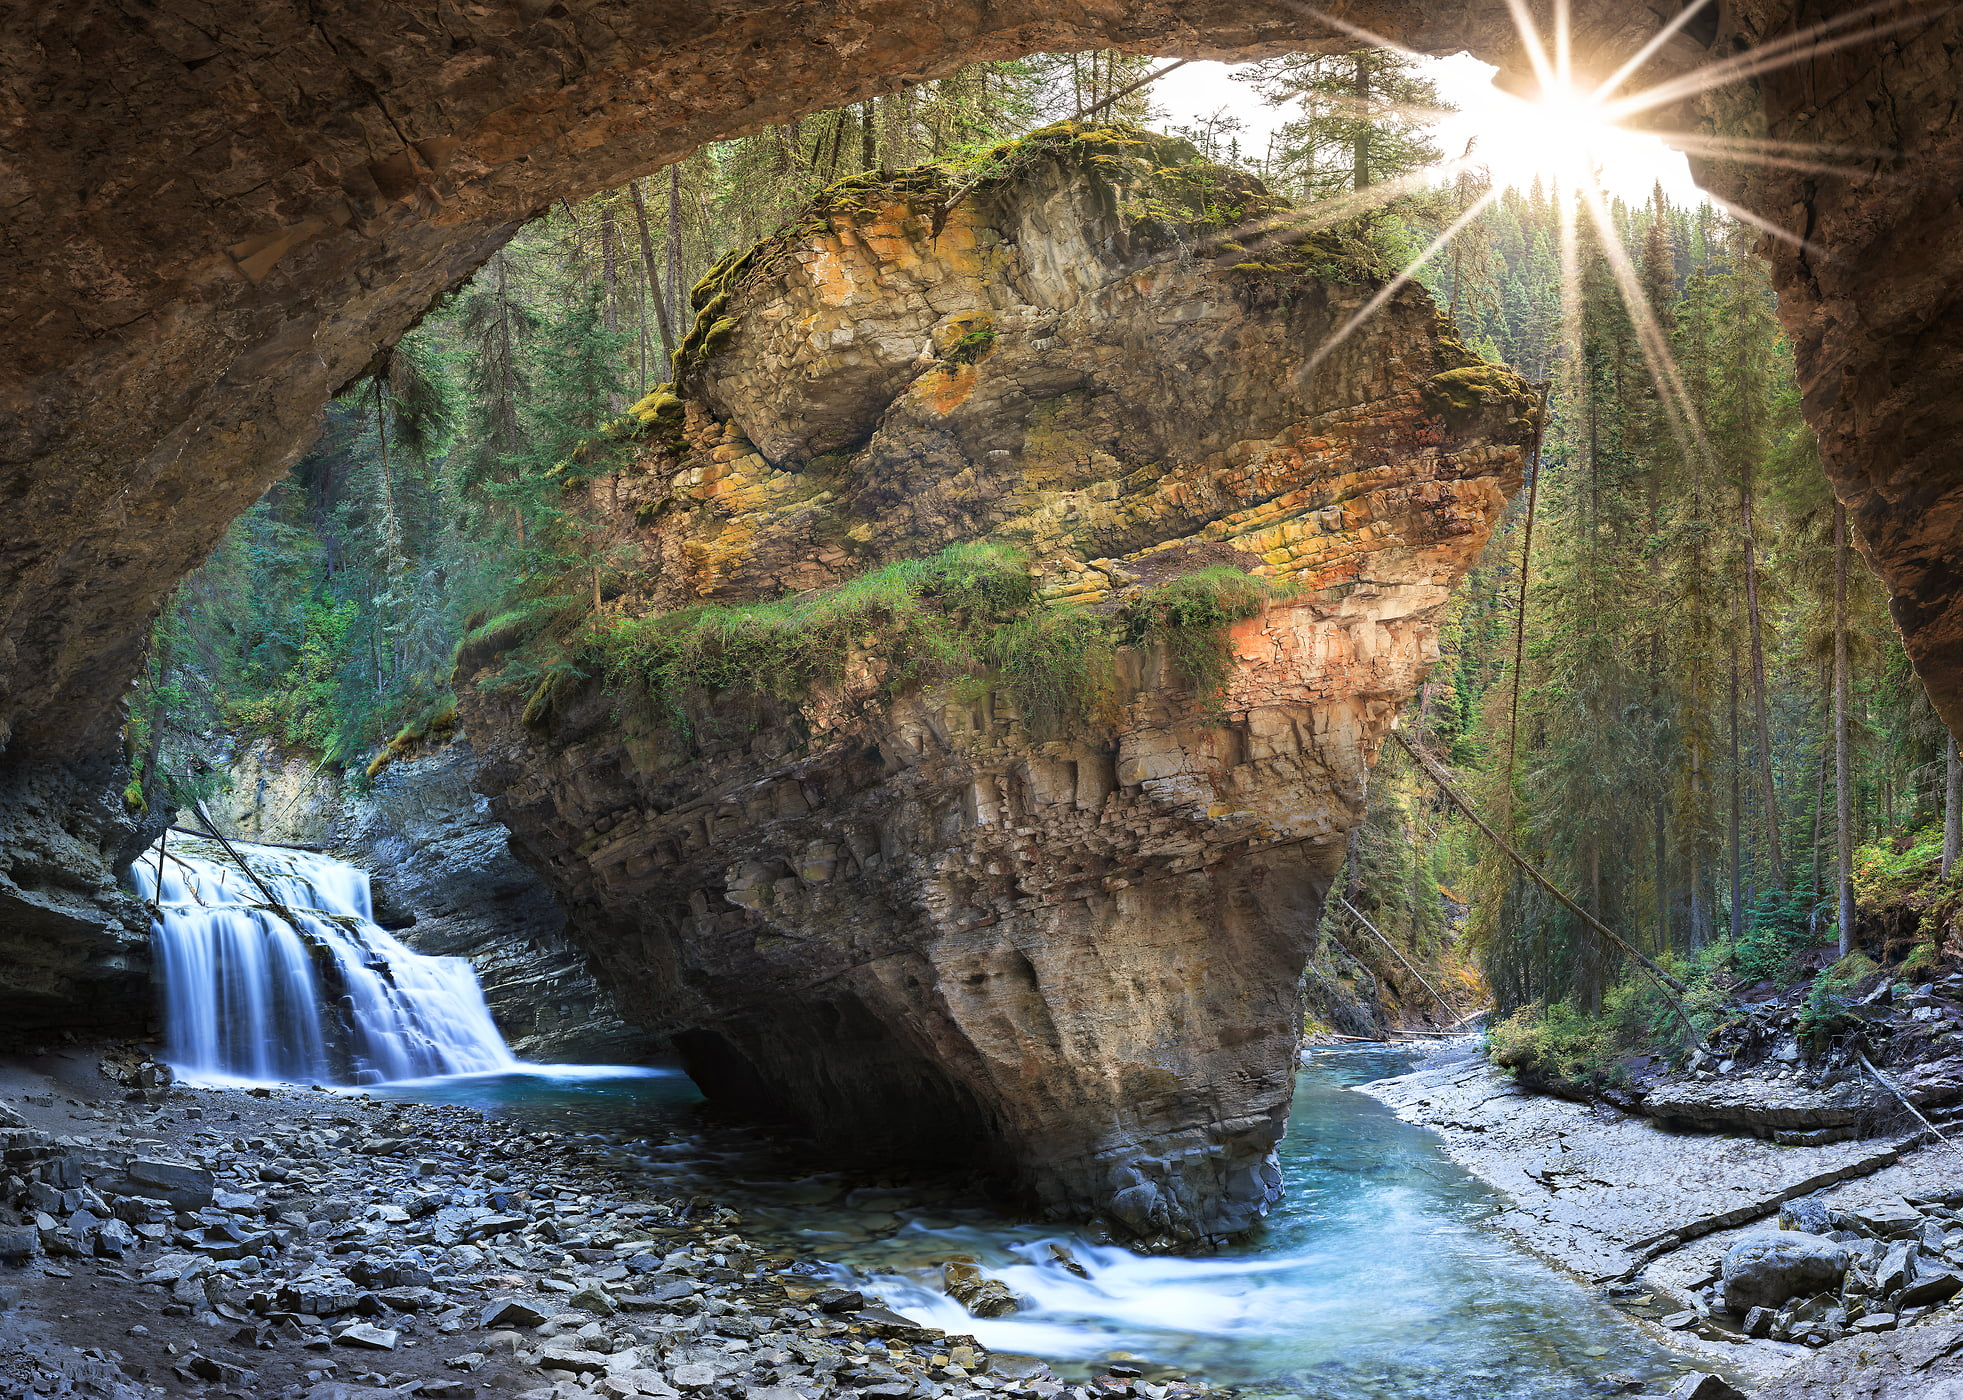 2,458 megapixels! A very high resolution, large-format nature photo of Johnston Canyon Cave, including a stream, waterfall, cave, and rock formation; fine art photograph created by Scott Dimond in Banff National Park, Alberta, Canada